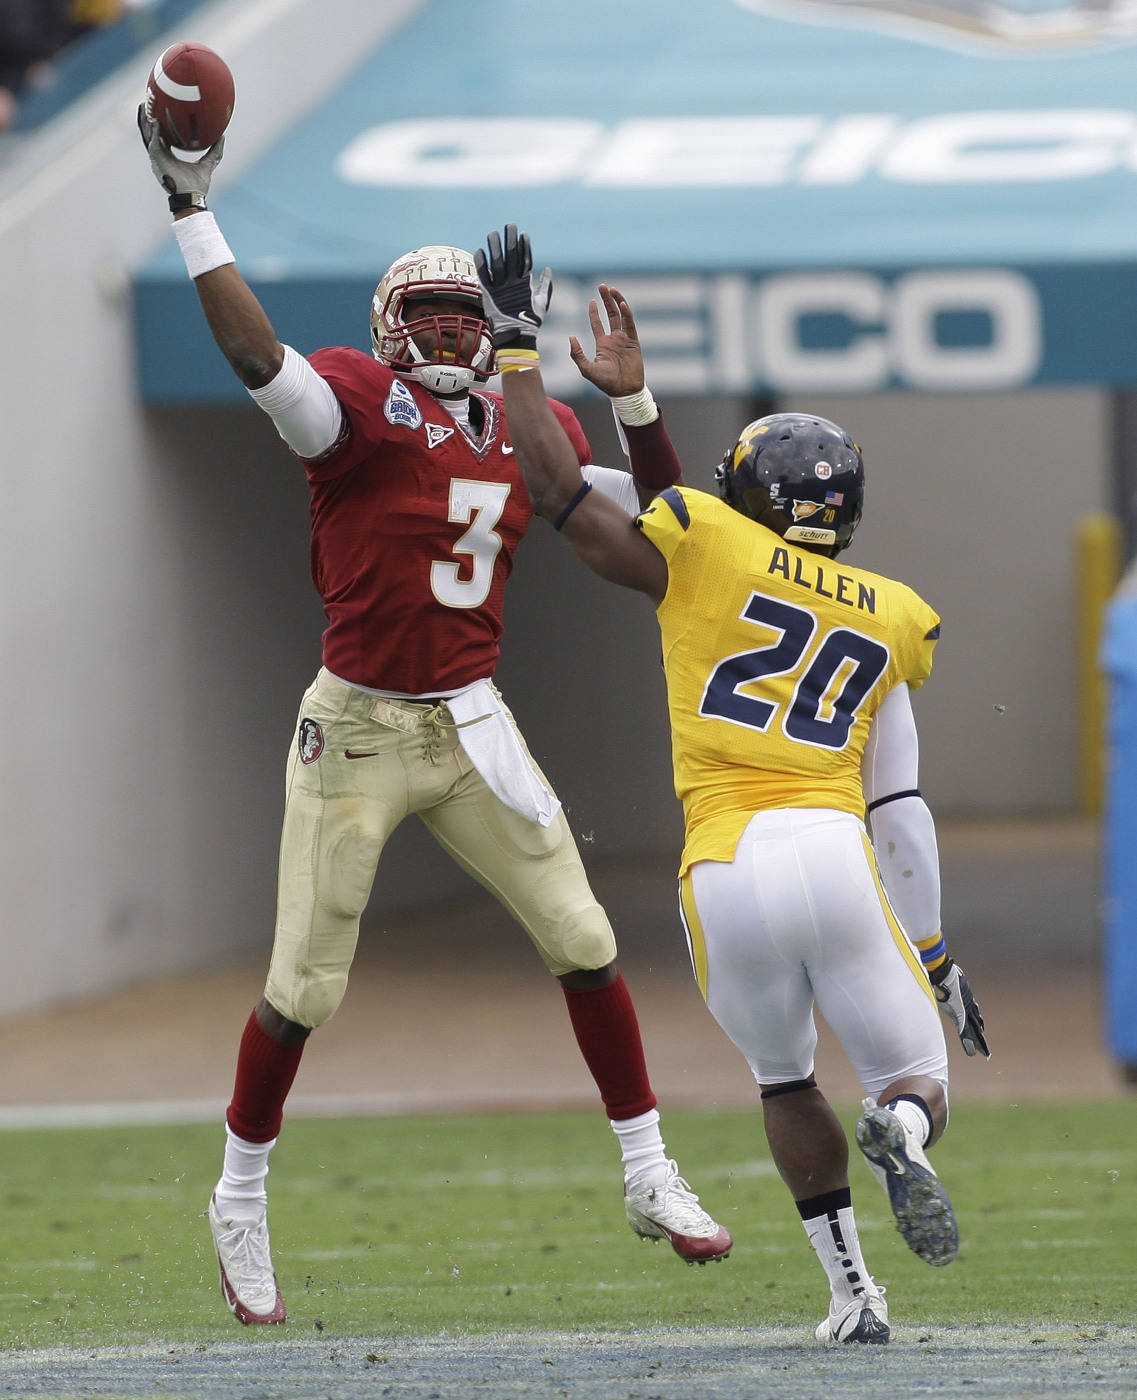 Florida State quarterback E.J. Manuel, left, throws a second-quarter pass as West Virginia defensive back Franchor Allen attempts to make the tackle during the Gator Bowl NCAA college football game, Friday, Jan. 1, 2010, in Jacksonville, Fla.(AP Photo/Phil Coale)